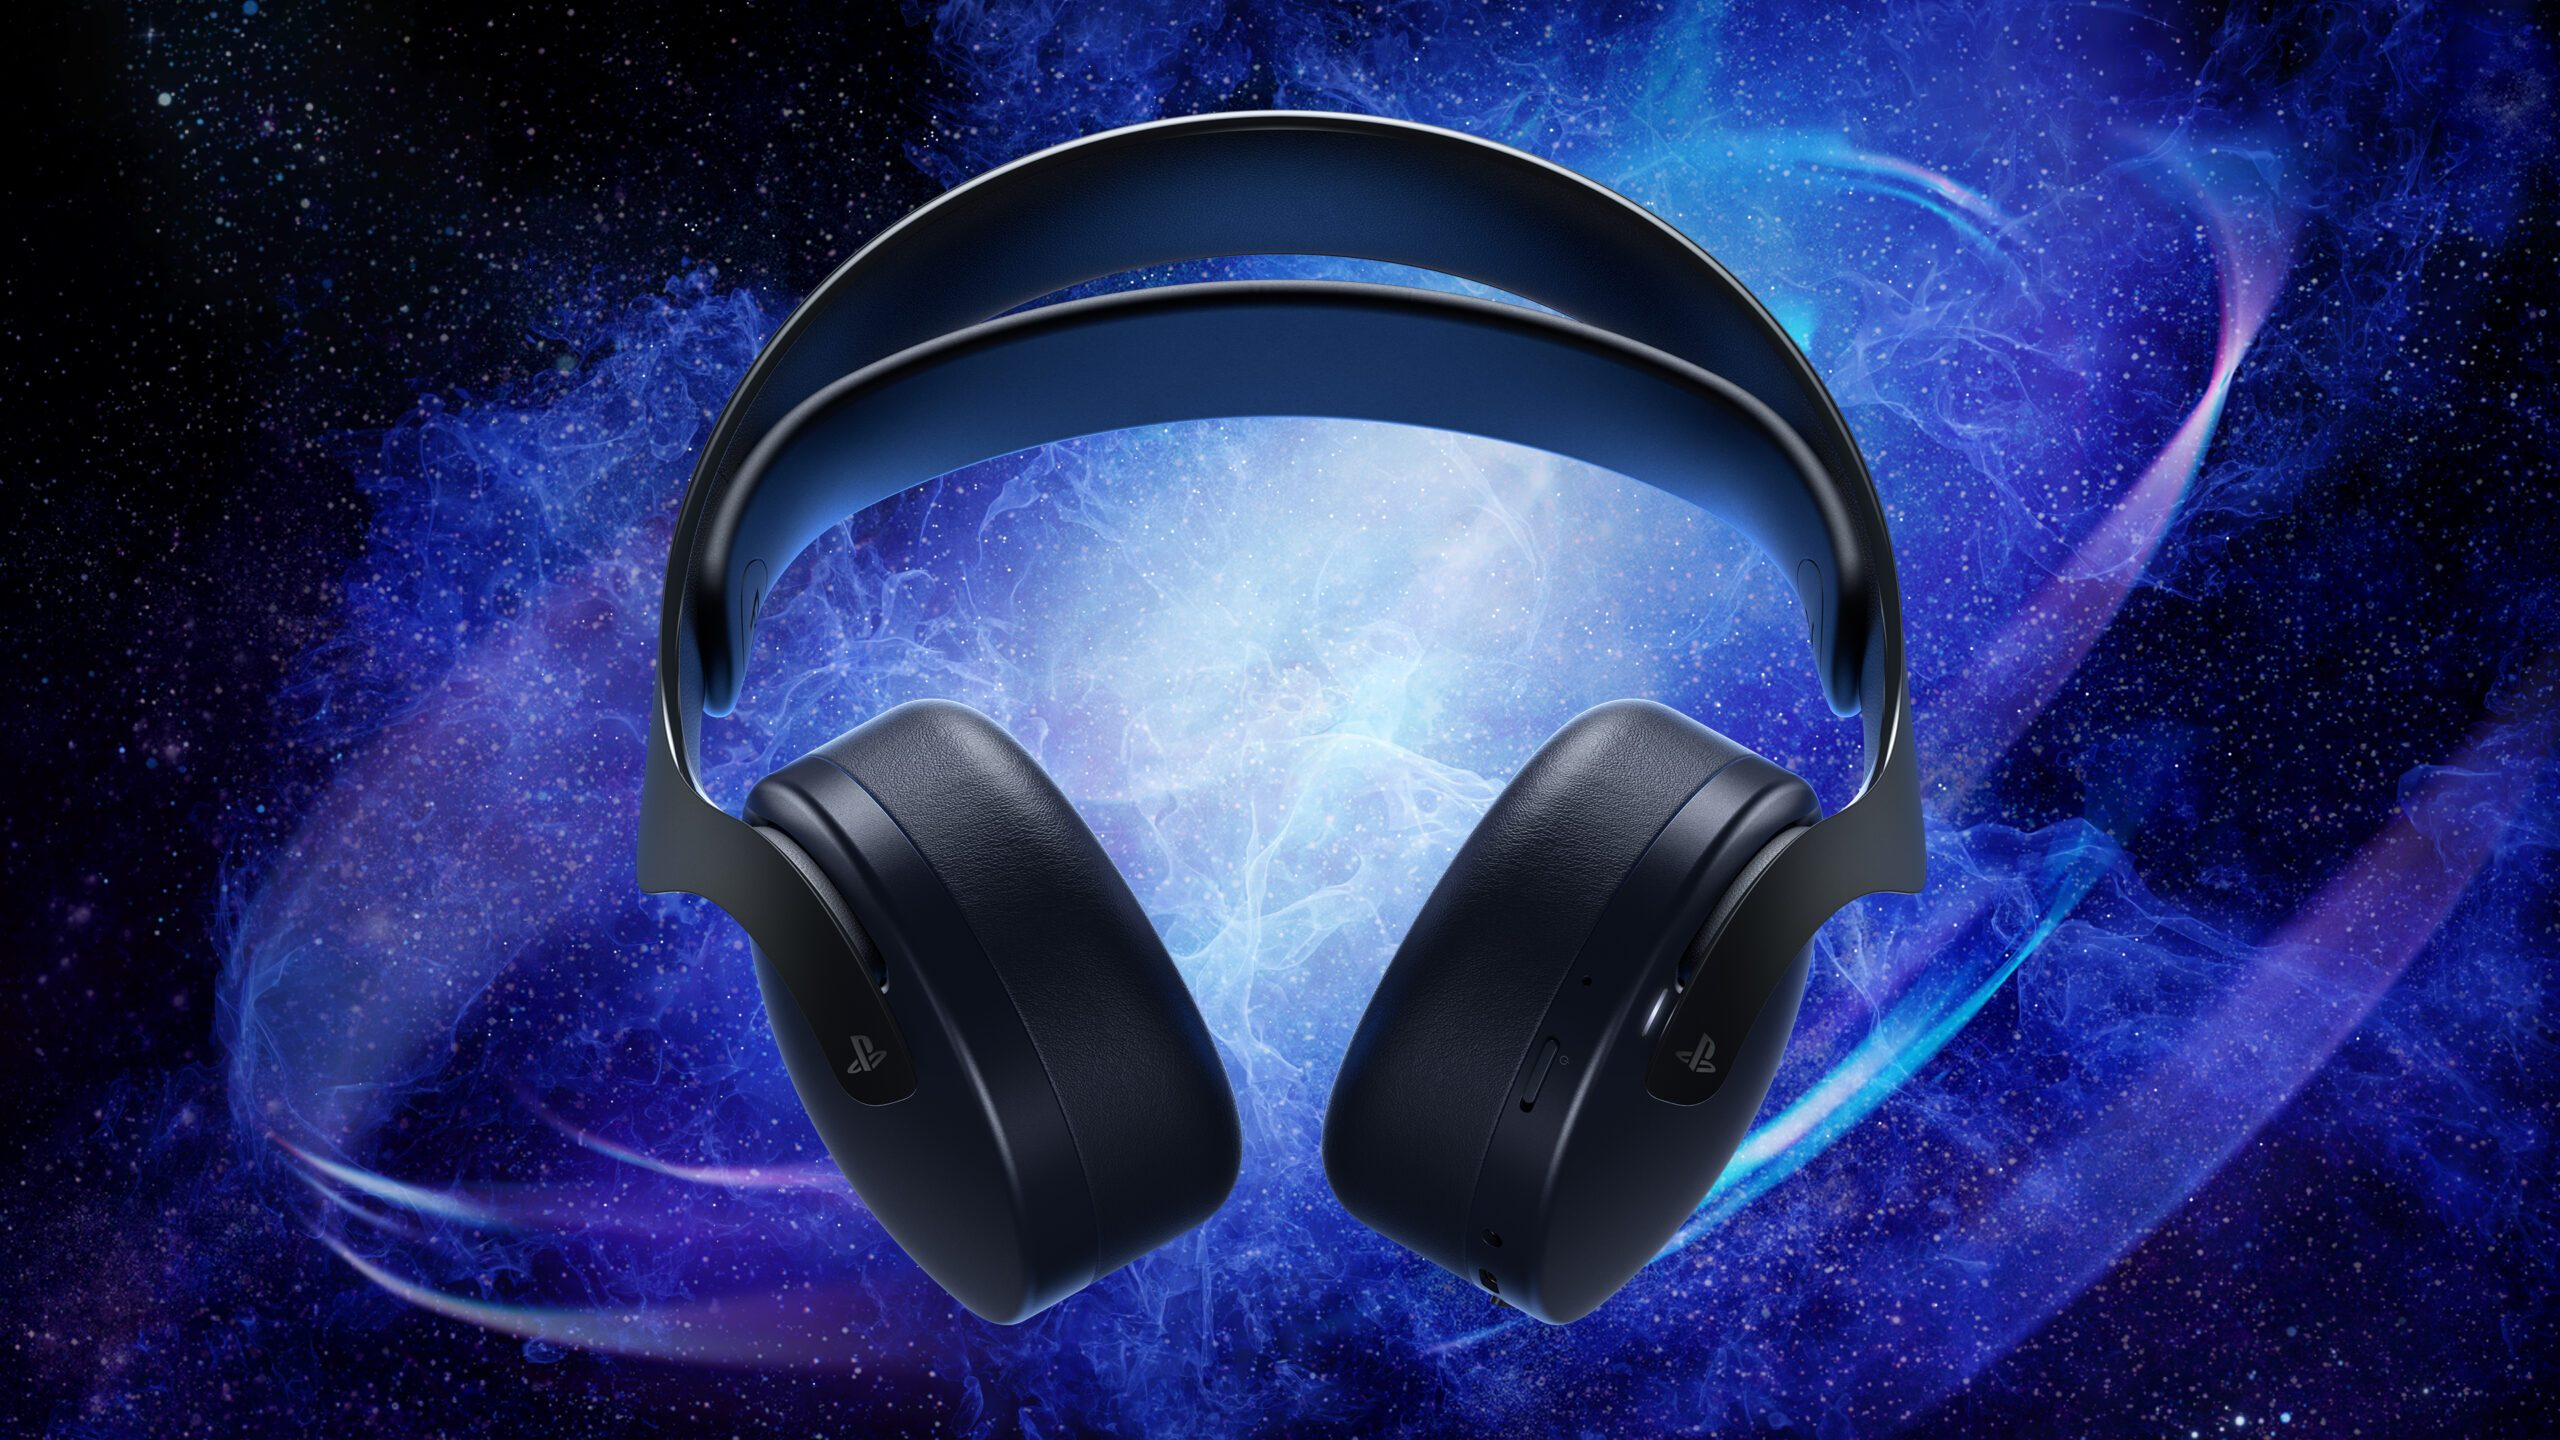 Pulse 3D Wireless Headset in Midnight Black launches next month